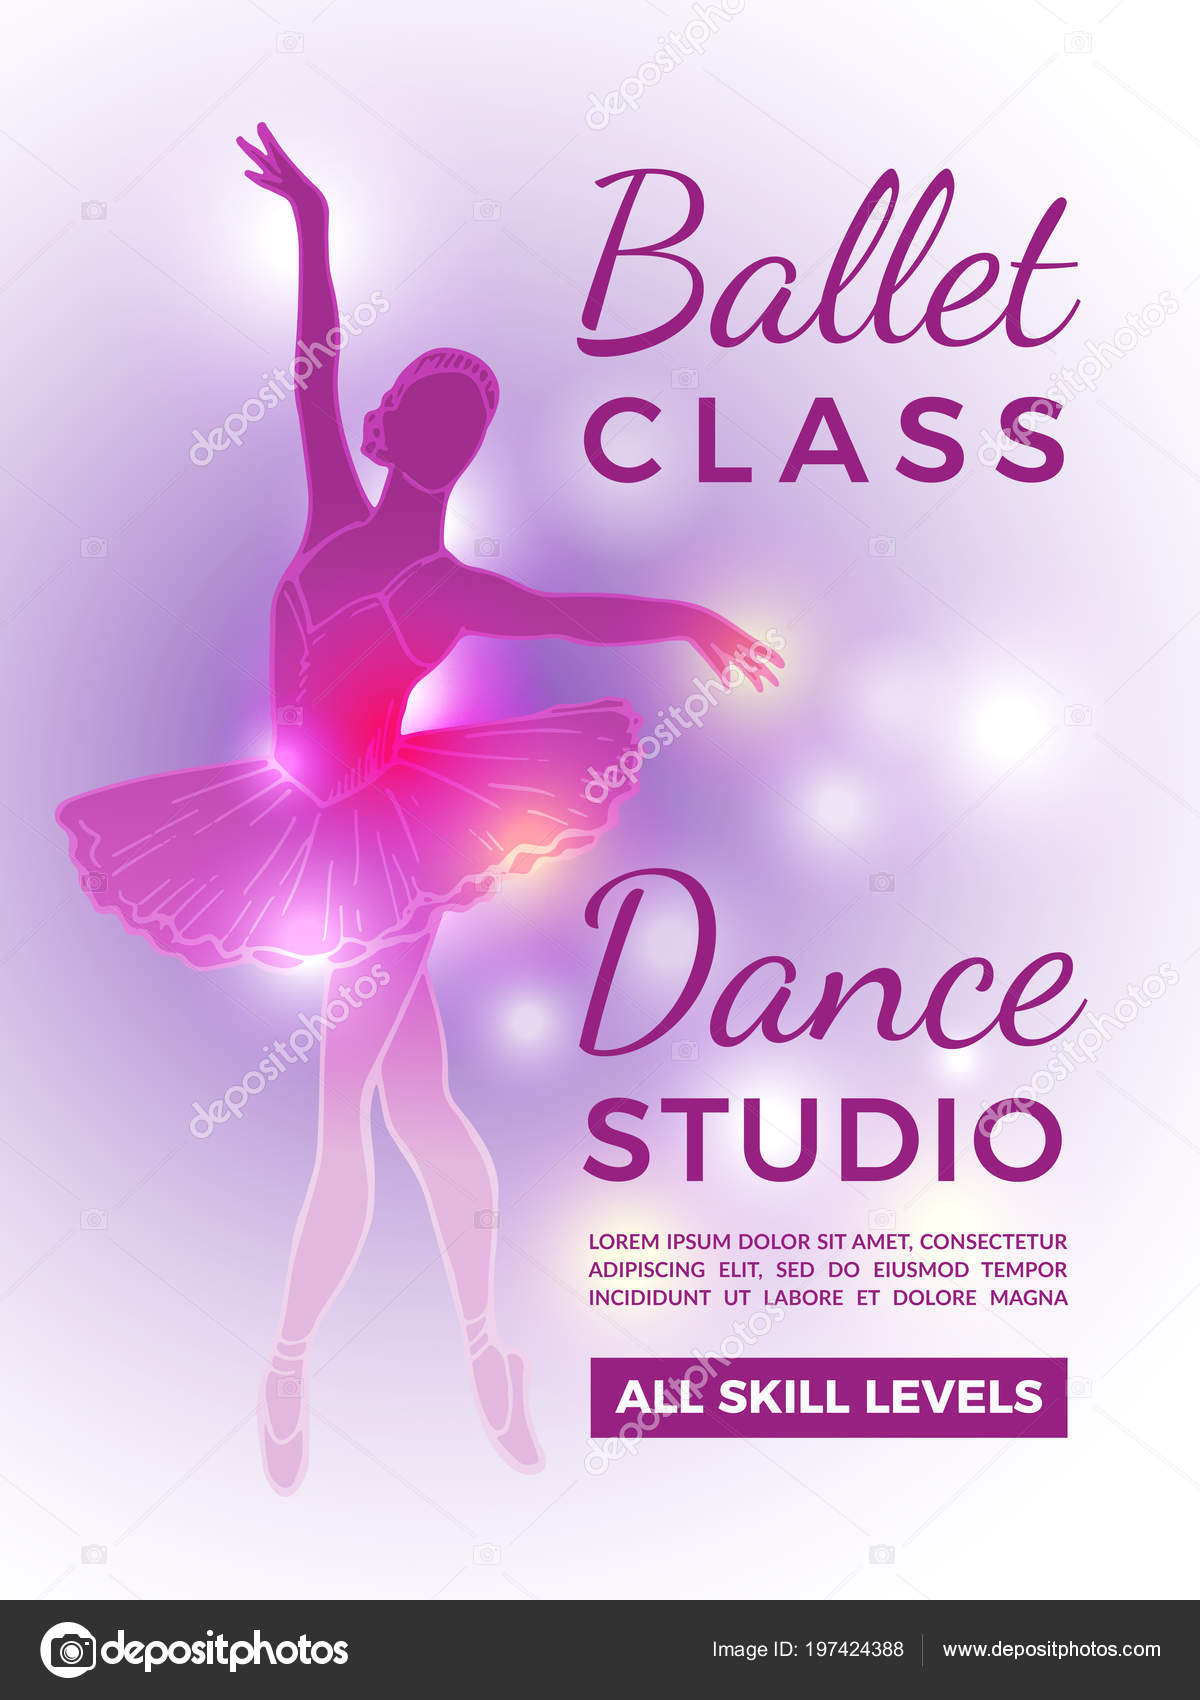 Poster Invitation In Ballet School Vector Design Template With